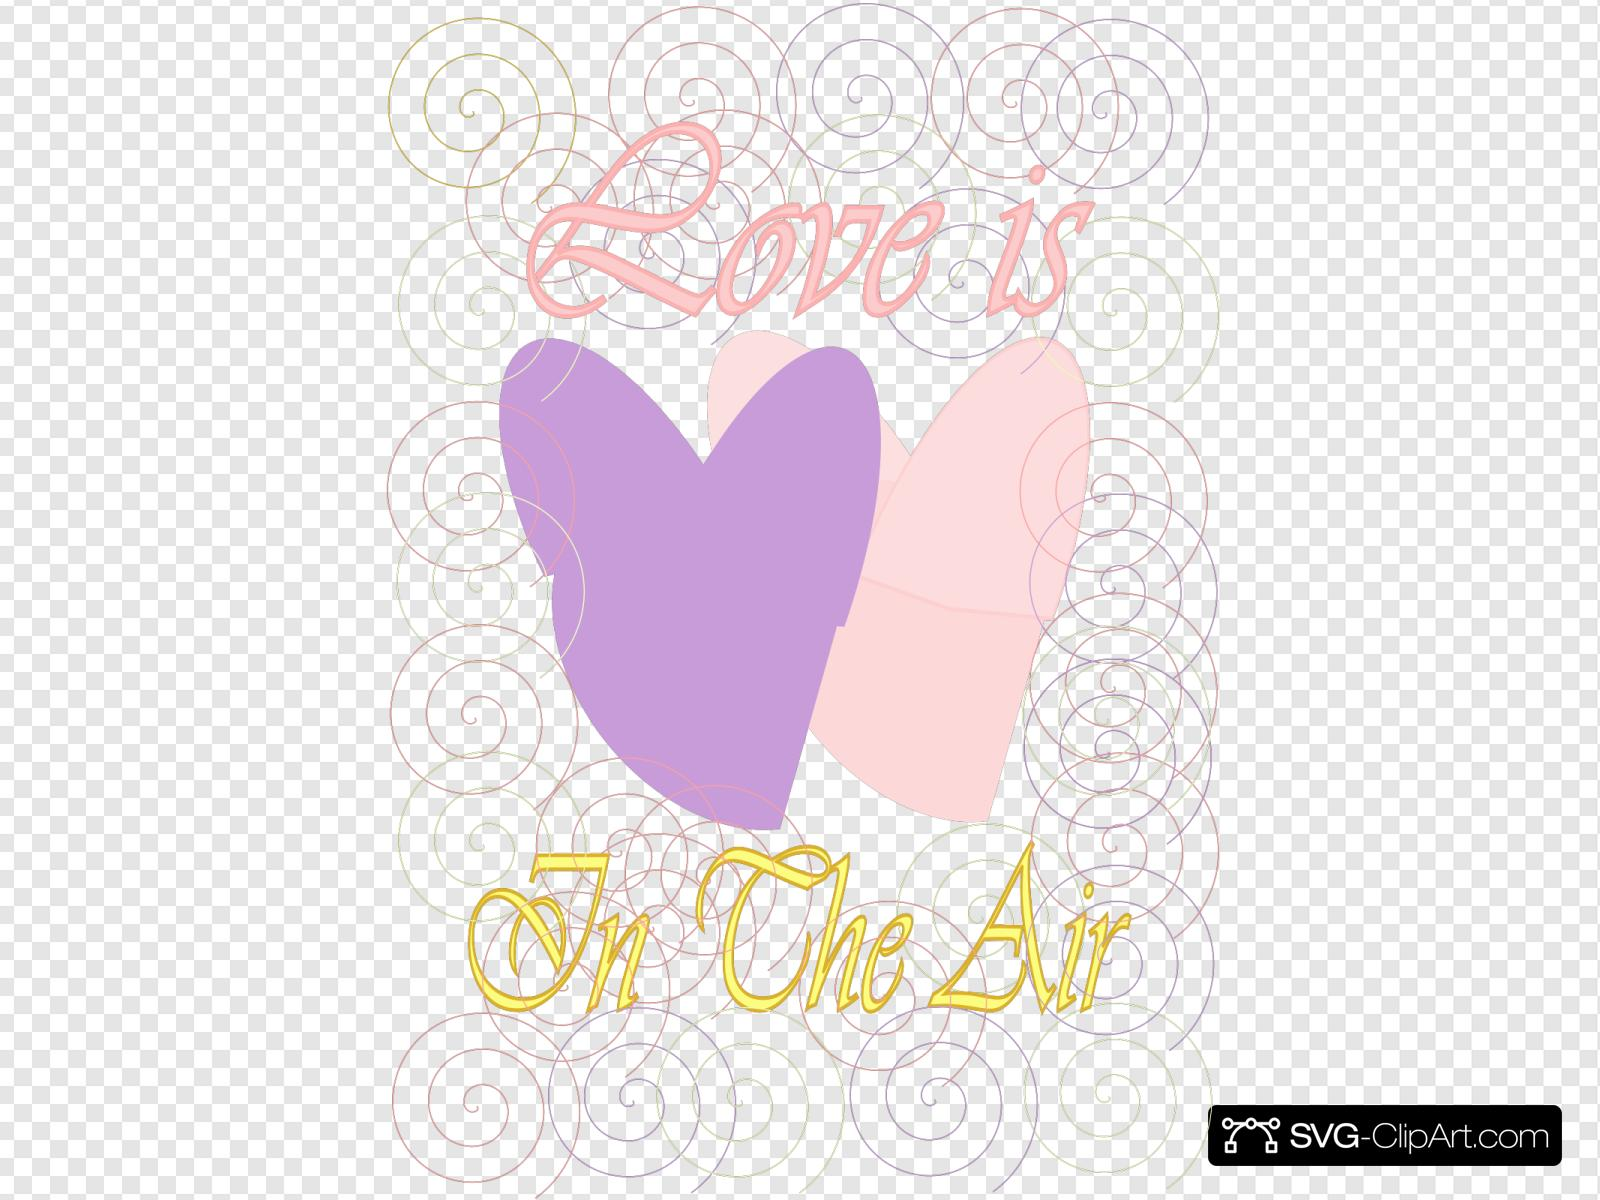 Love Is In The Air Svg Vector Love Is In The Air Clip Art Svg Clipart